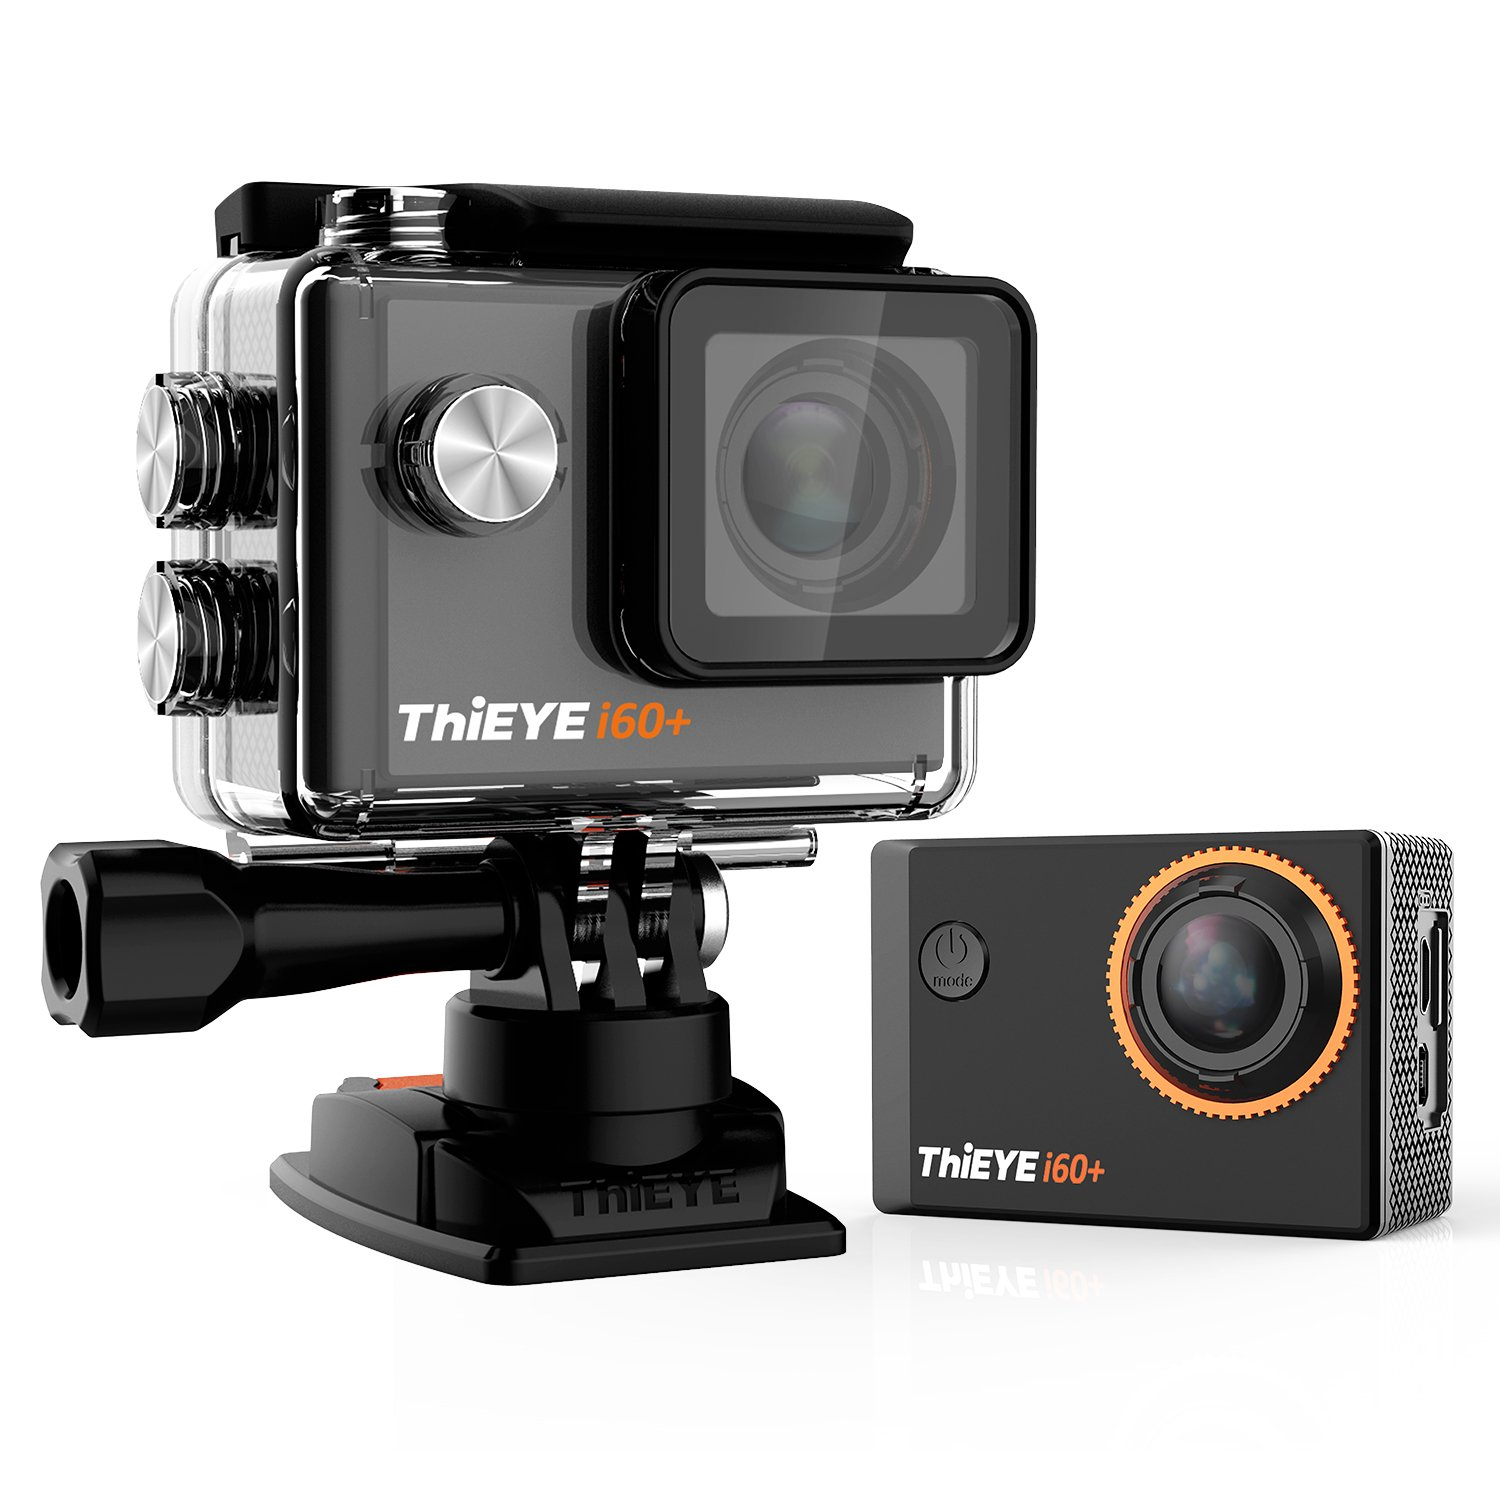 ThiEYE Original i60+ 4K Wifi Action Camera 2'' HD Screen 197FT Waterproof Video Sport Cam 170 Wide Angle APP Control with Full Accessories